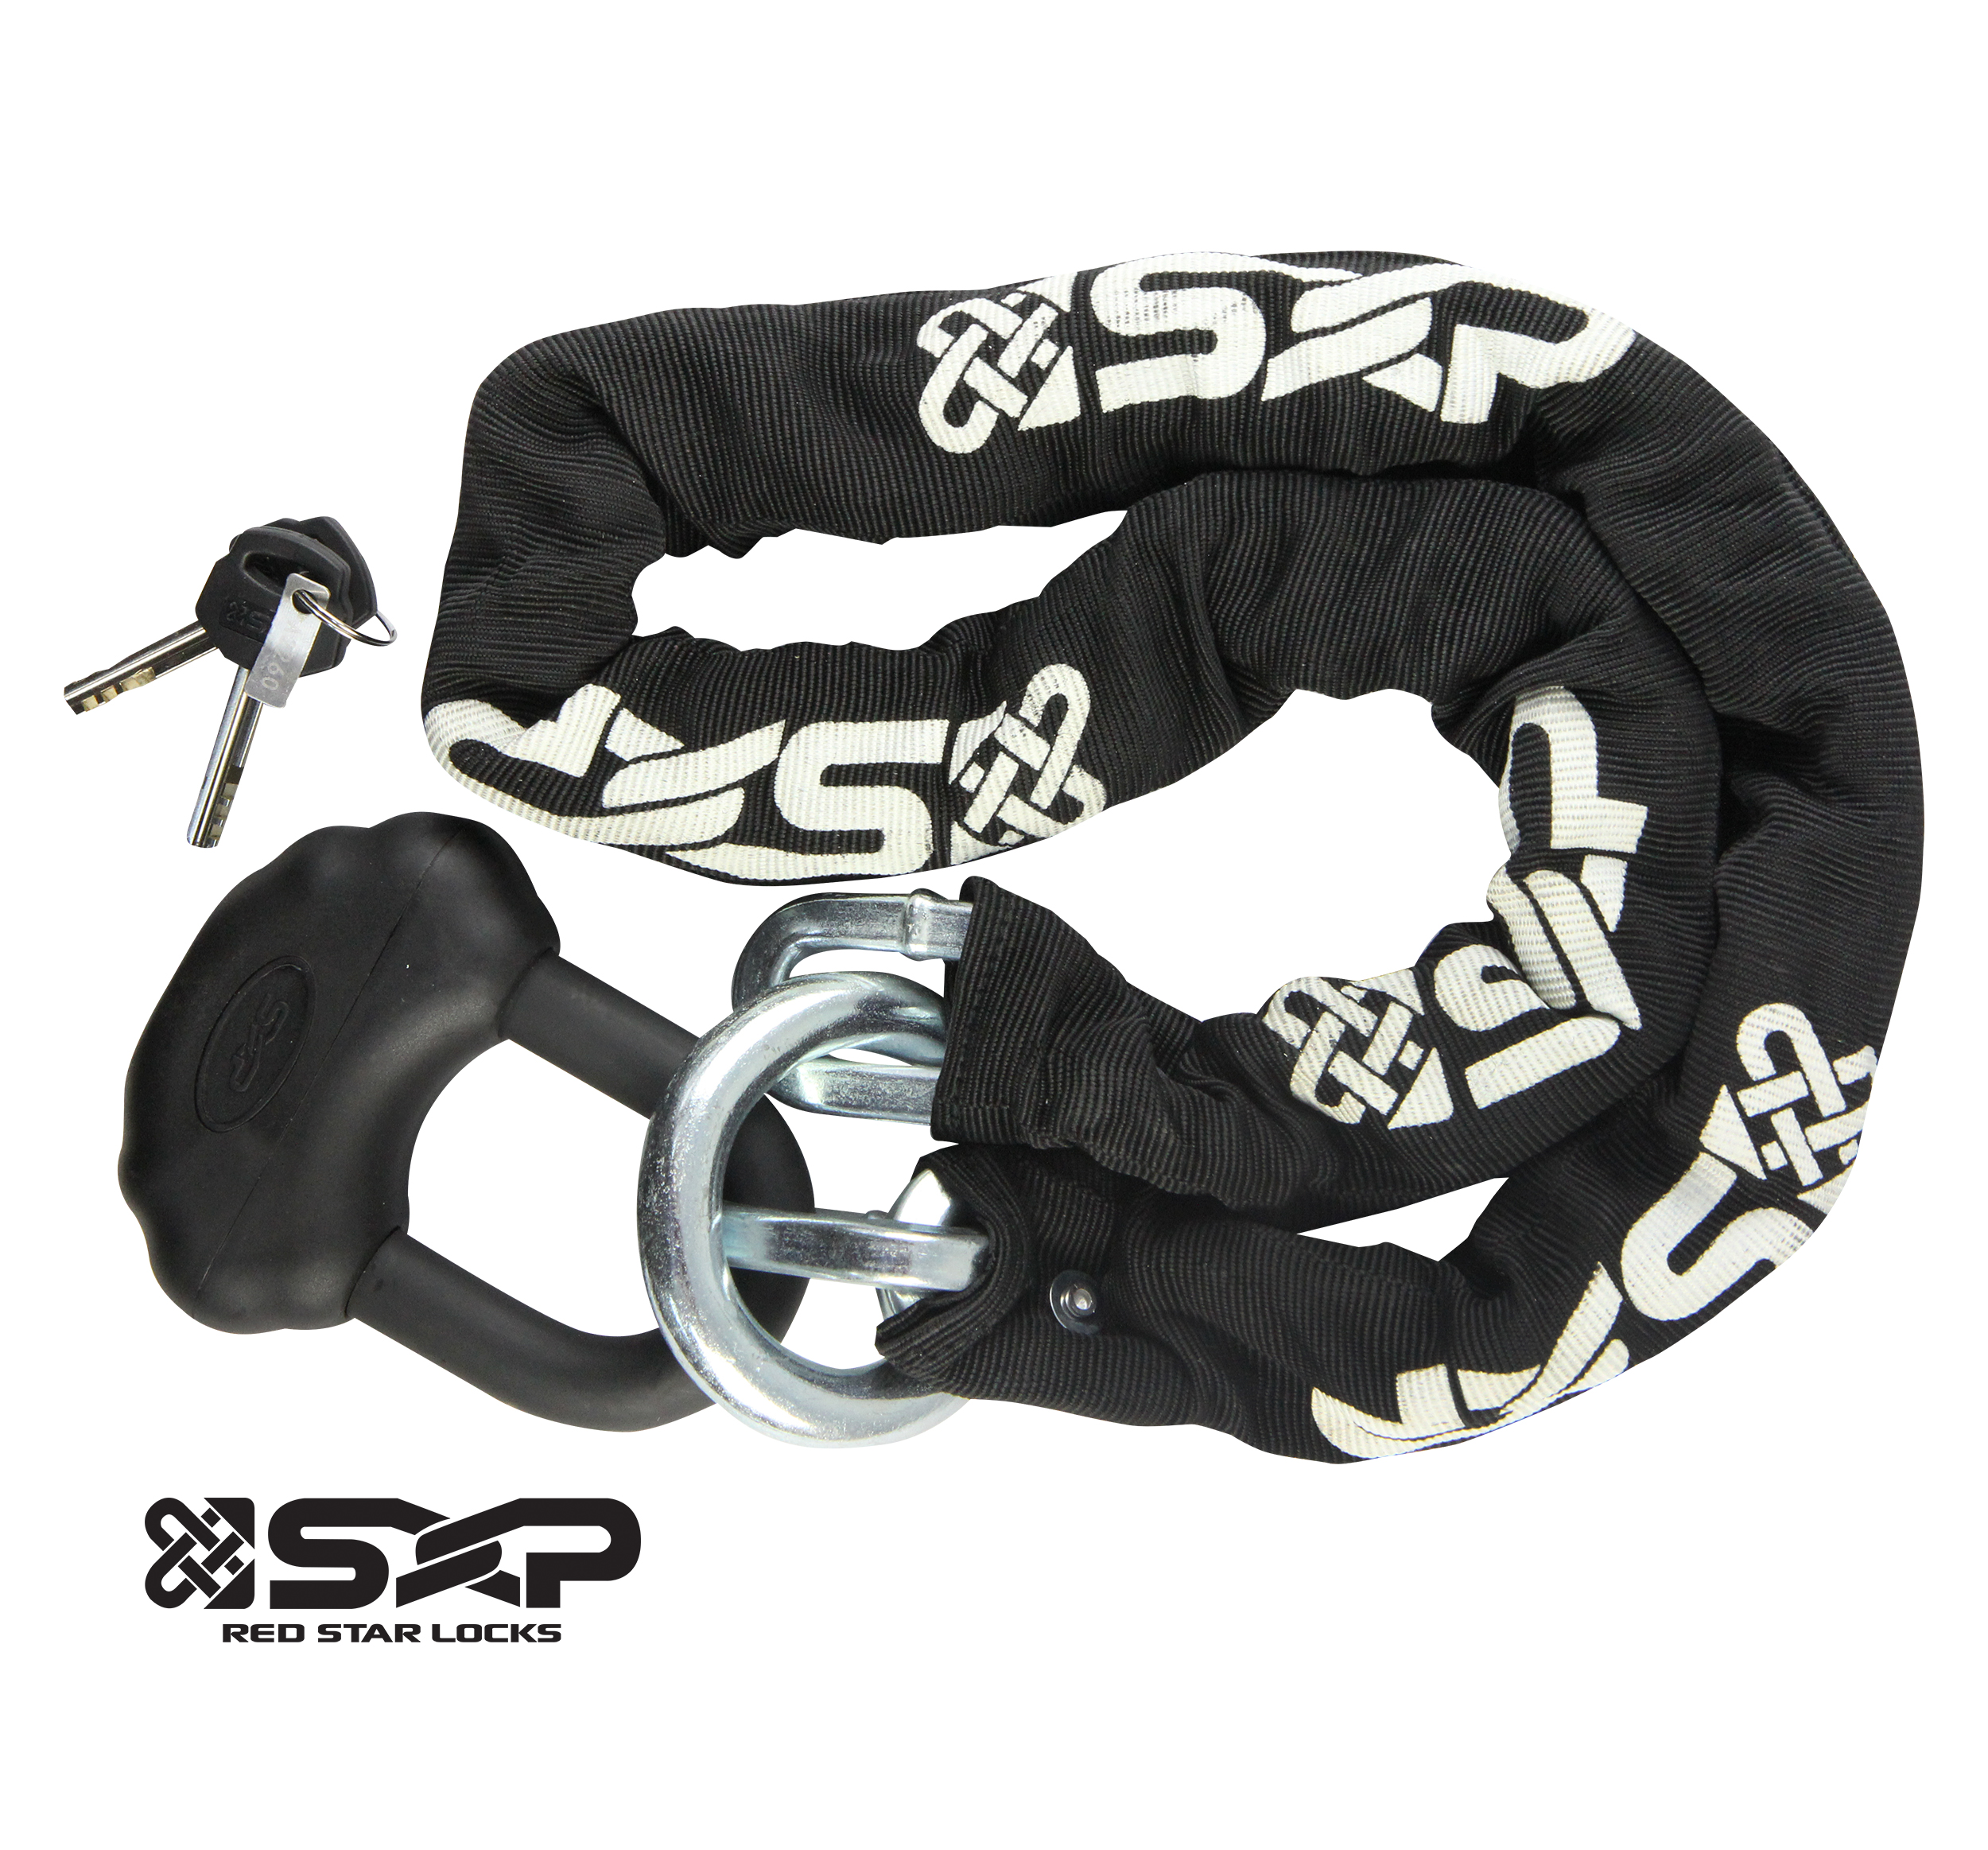 New Product: SXP Motorcycle Security Locks